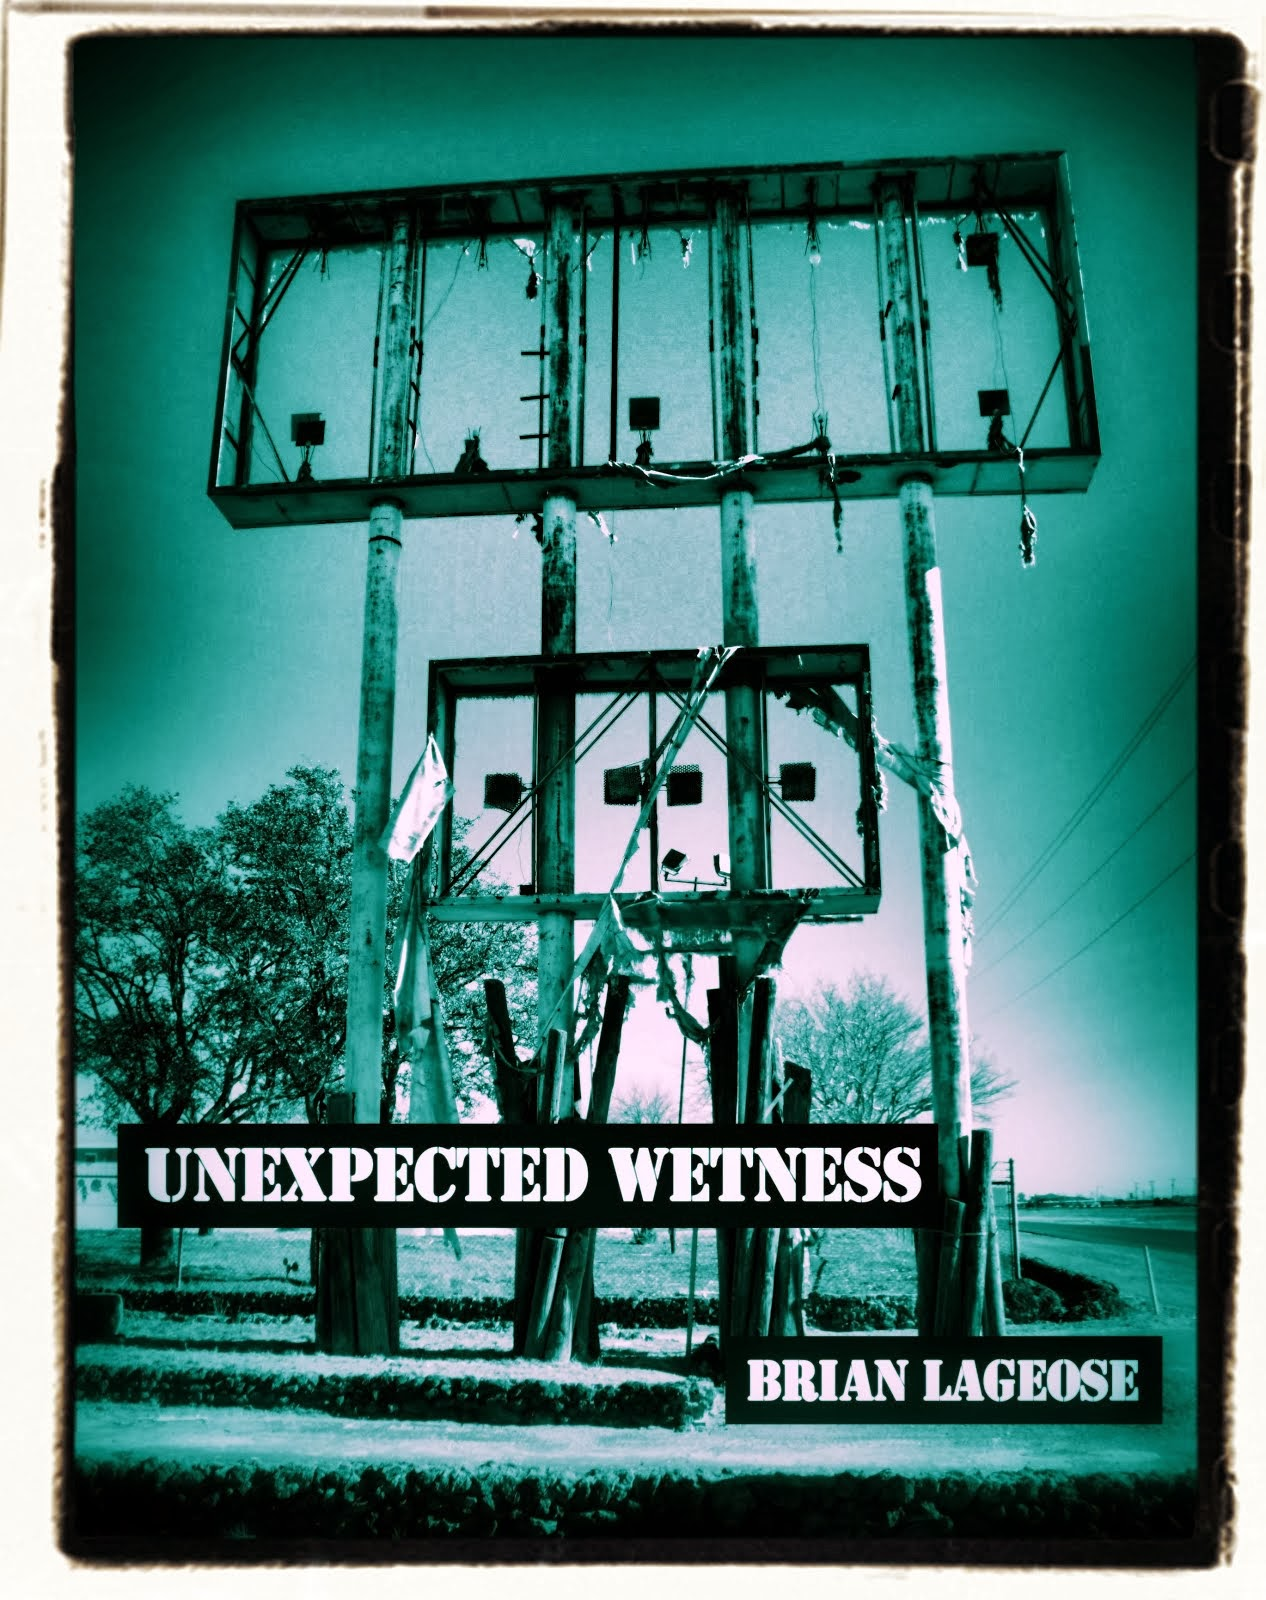 """Unexpected Wetness"" Now Available on Amazon. Click for details."